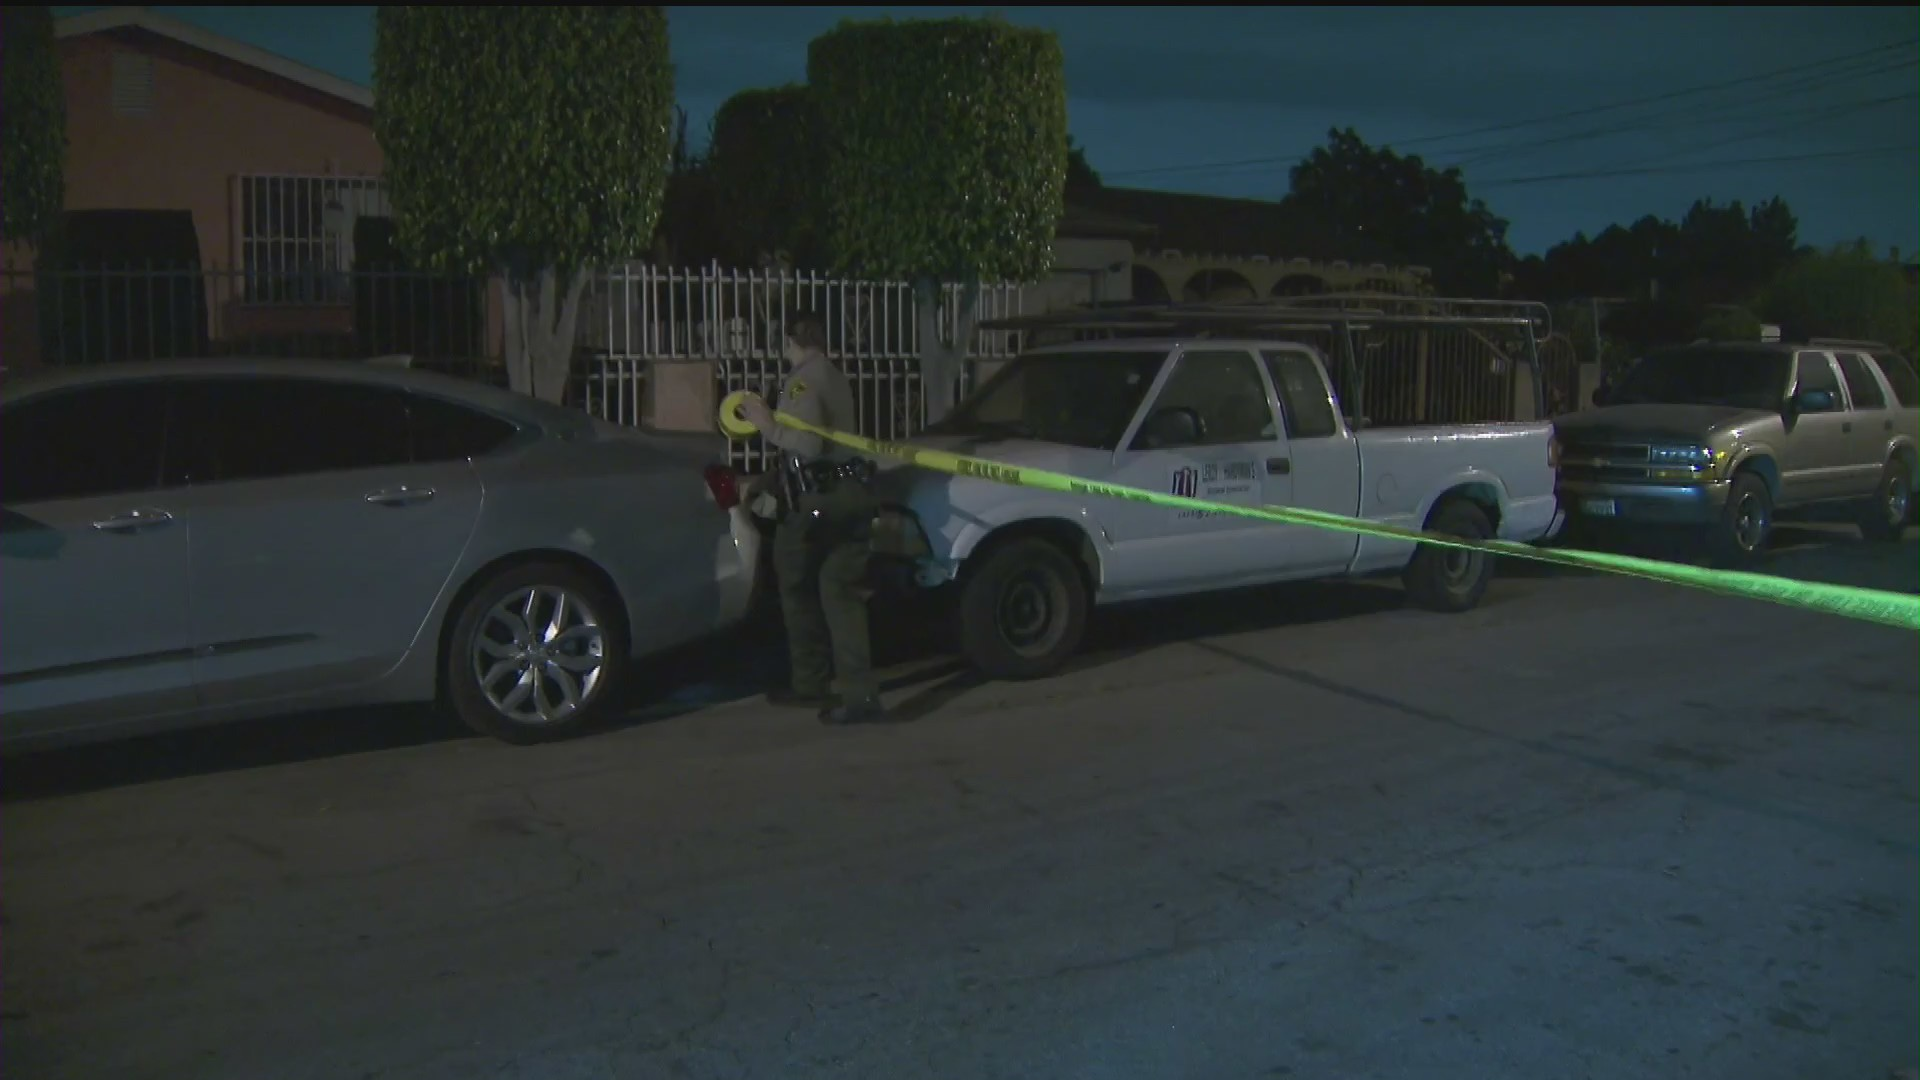 Authorities investigate a fatal shooting in the Willowbrook area on June 17, 2020. (KTLA)